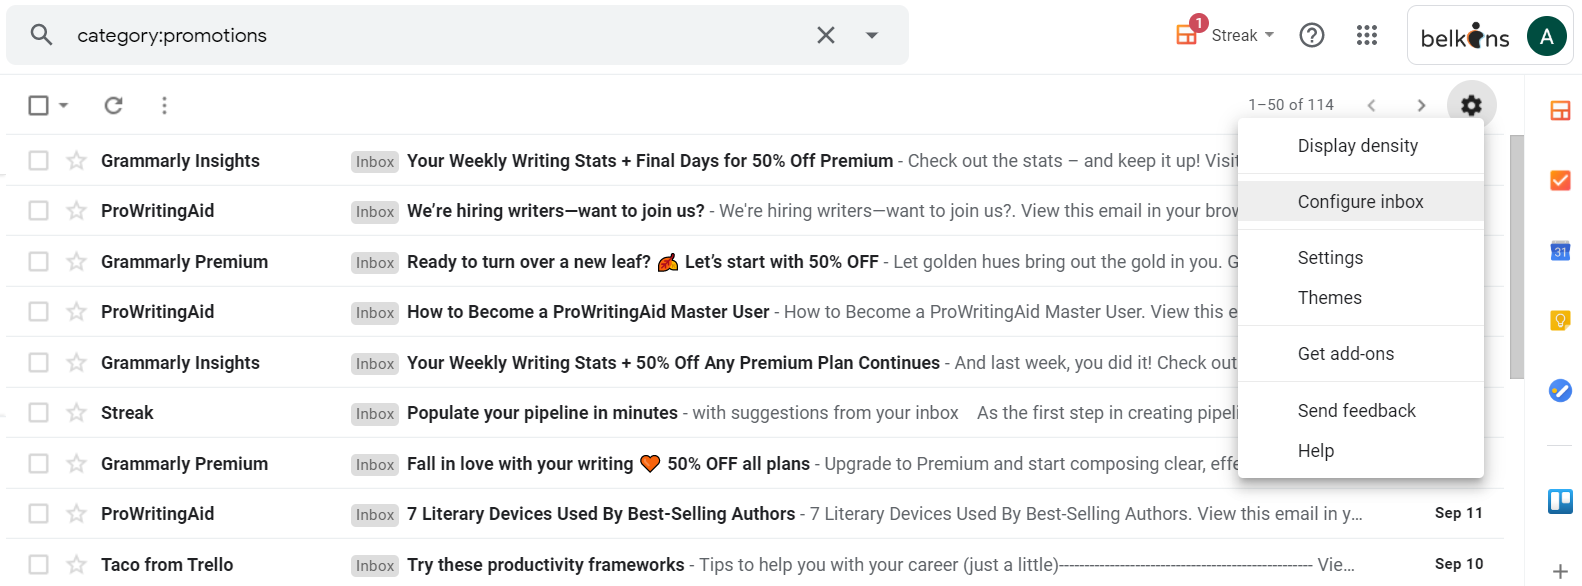 email promotion category